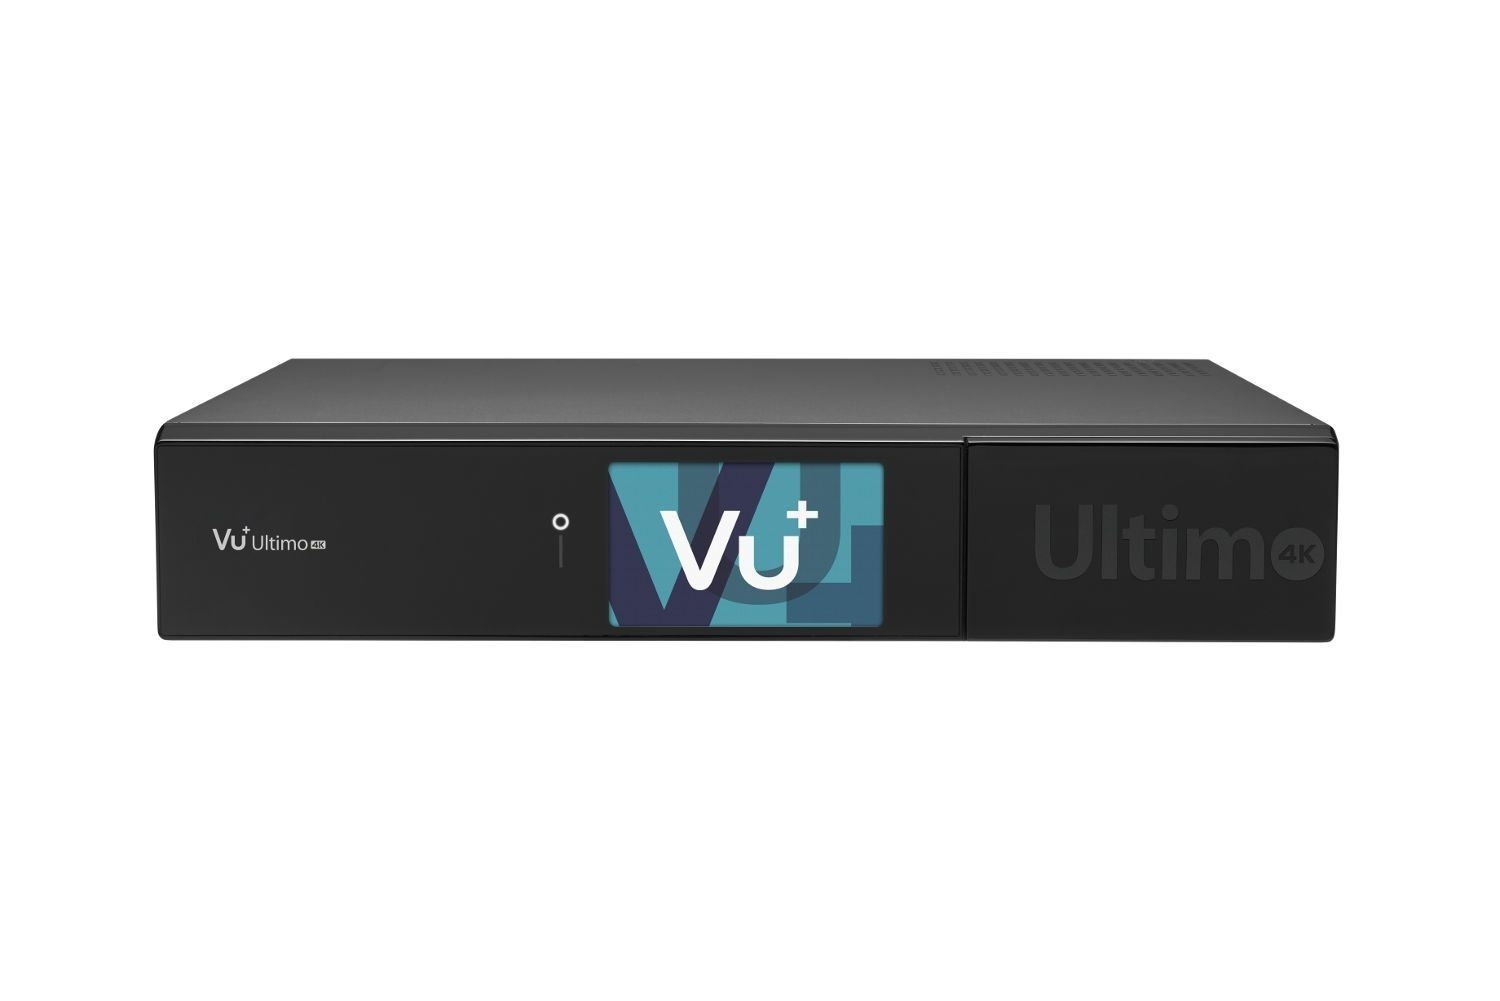 VU+ Ultimo 4K 2x DVB-C FBC / 1x DVB-C/T2 Dual Tuner 6 TB HDD Linux Receiver UHD 2160p